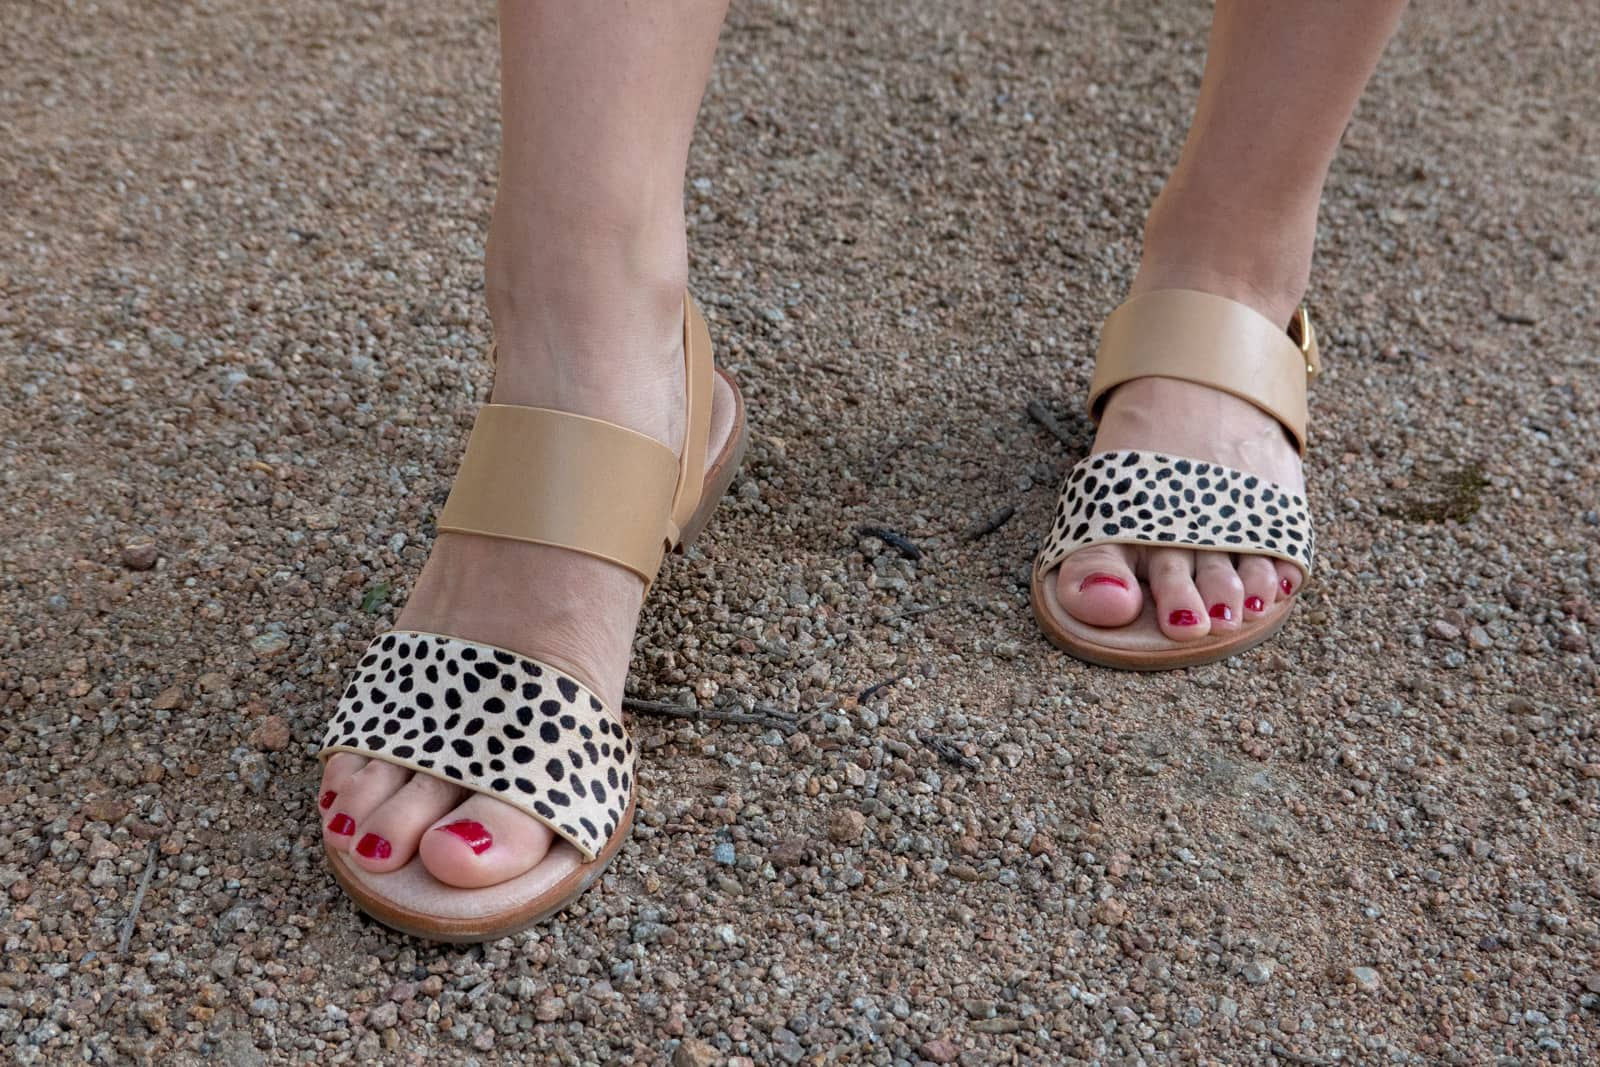 Close up of a woman's feet, wearing tan sandals with a strap that has animal print. Her toenails are painted in a dark magenta shade.